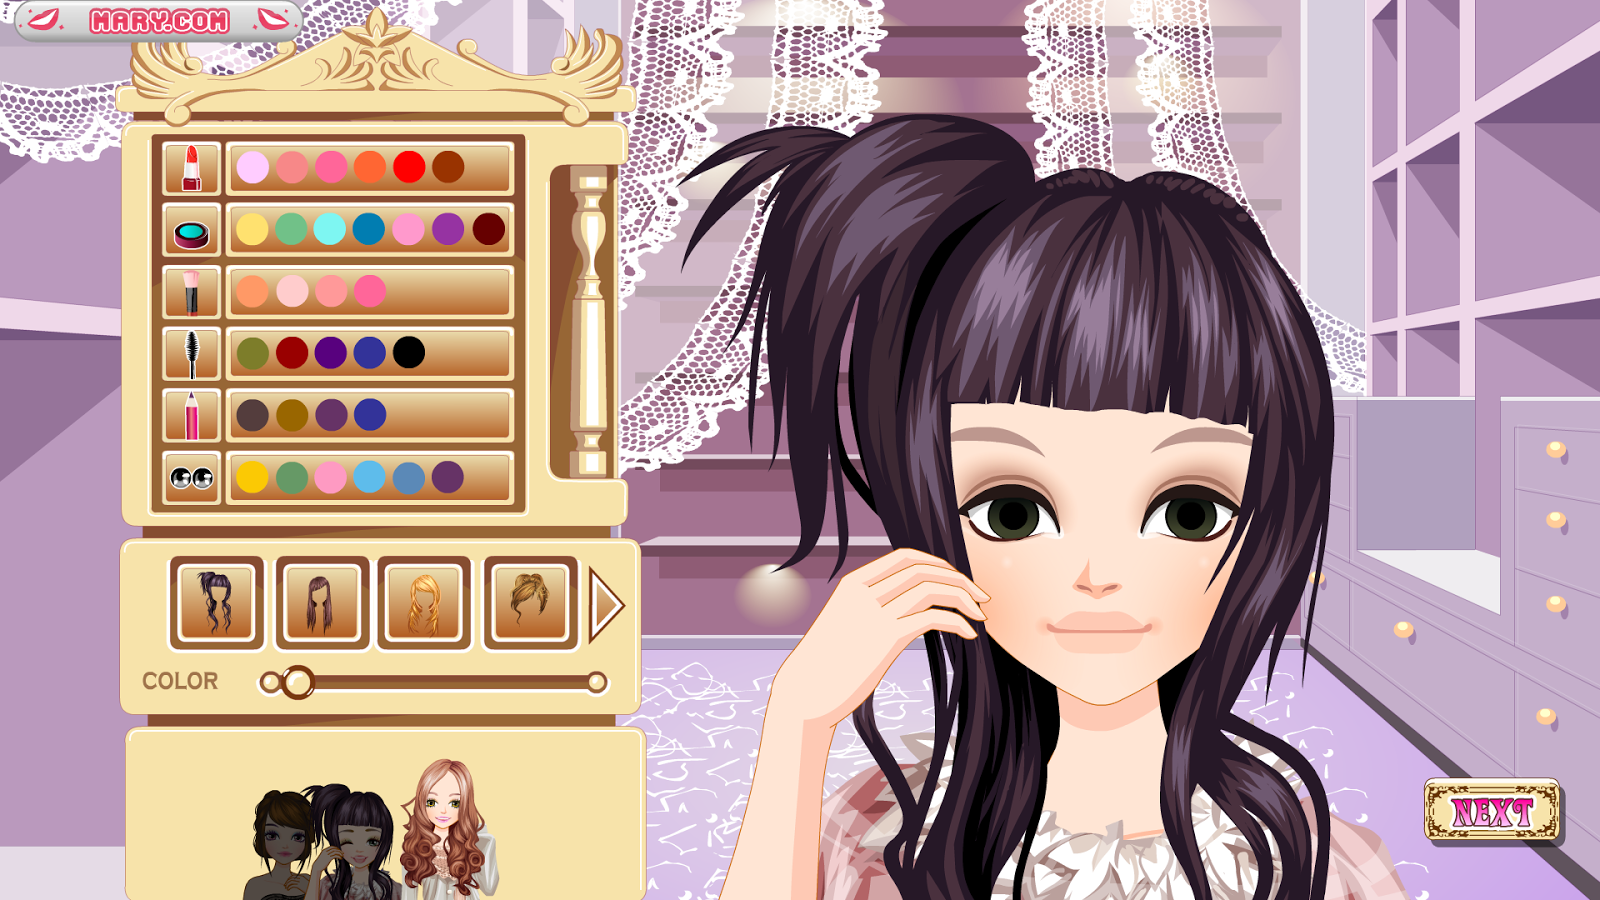 Long Hair Girls Girl Games Android Apps On Google Play - Games for hairstyle and dress up